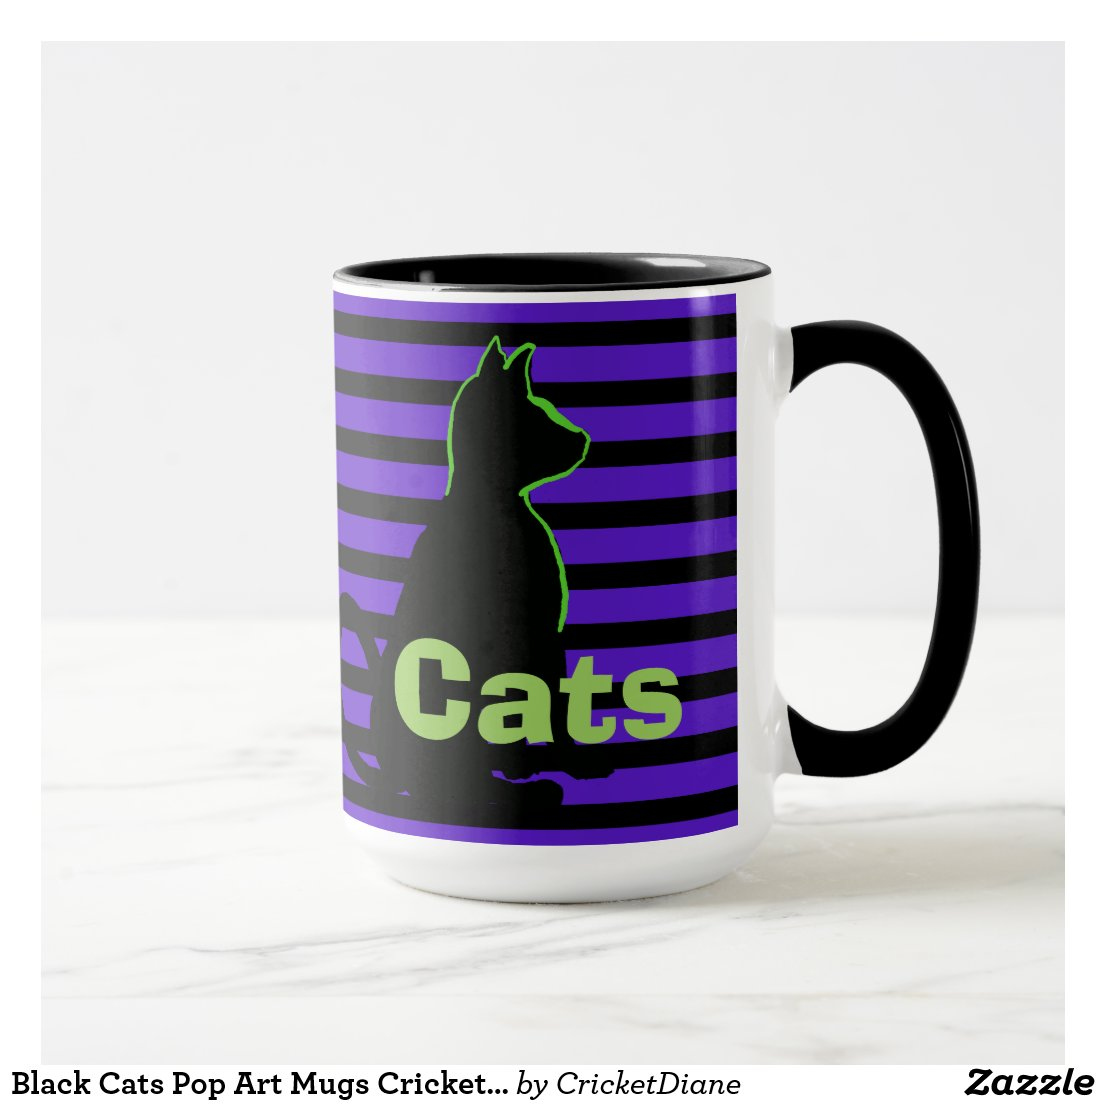 Black Cats Pop Art Mugs CricketDiane